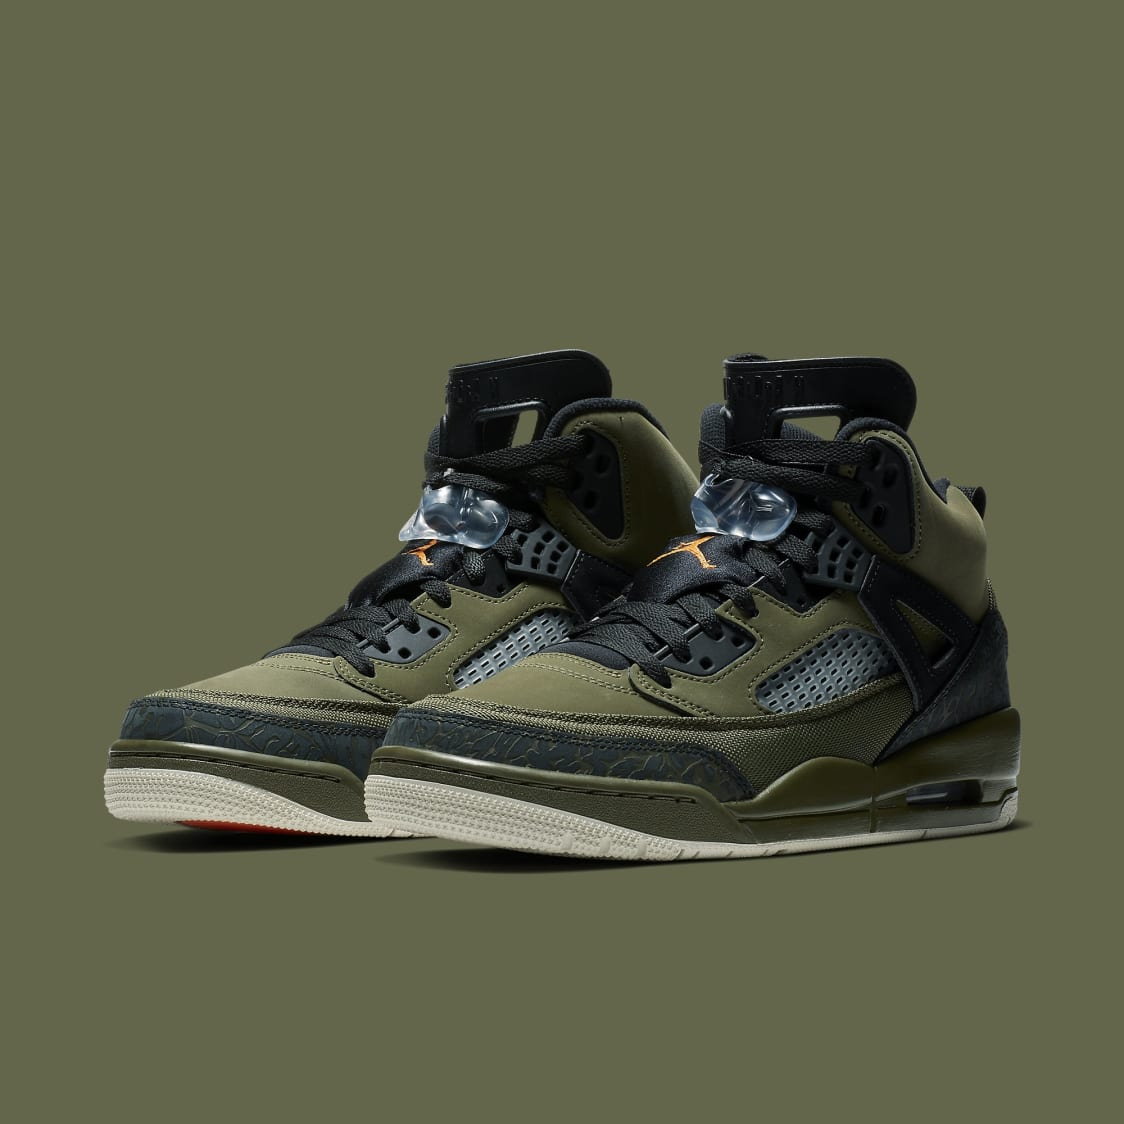 Jordan Spizike Undefeated Olive Green Release Date 315371-300  18929497e